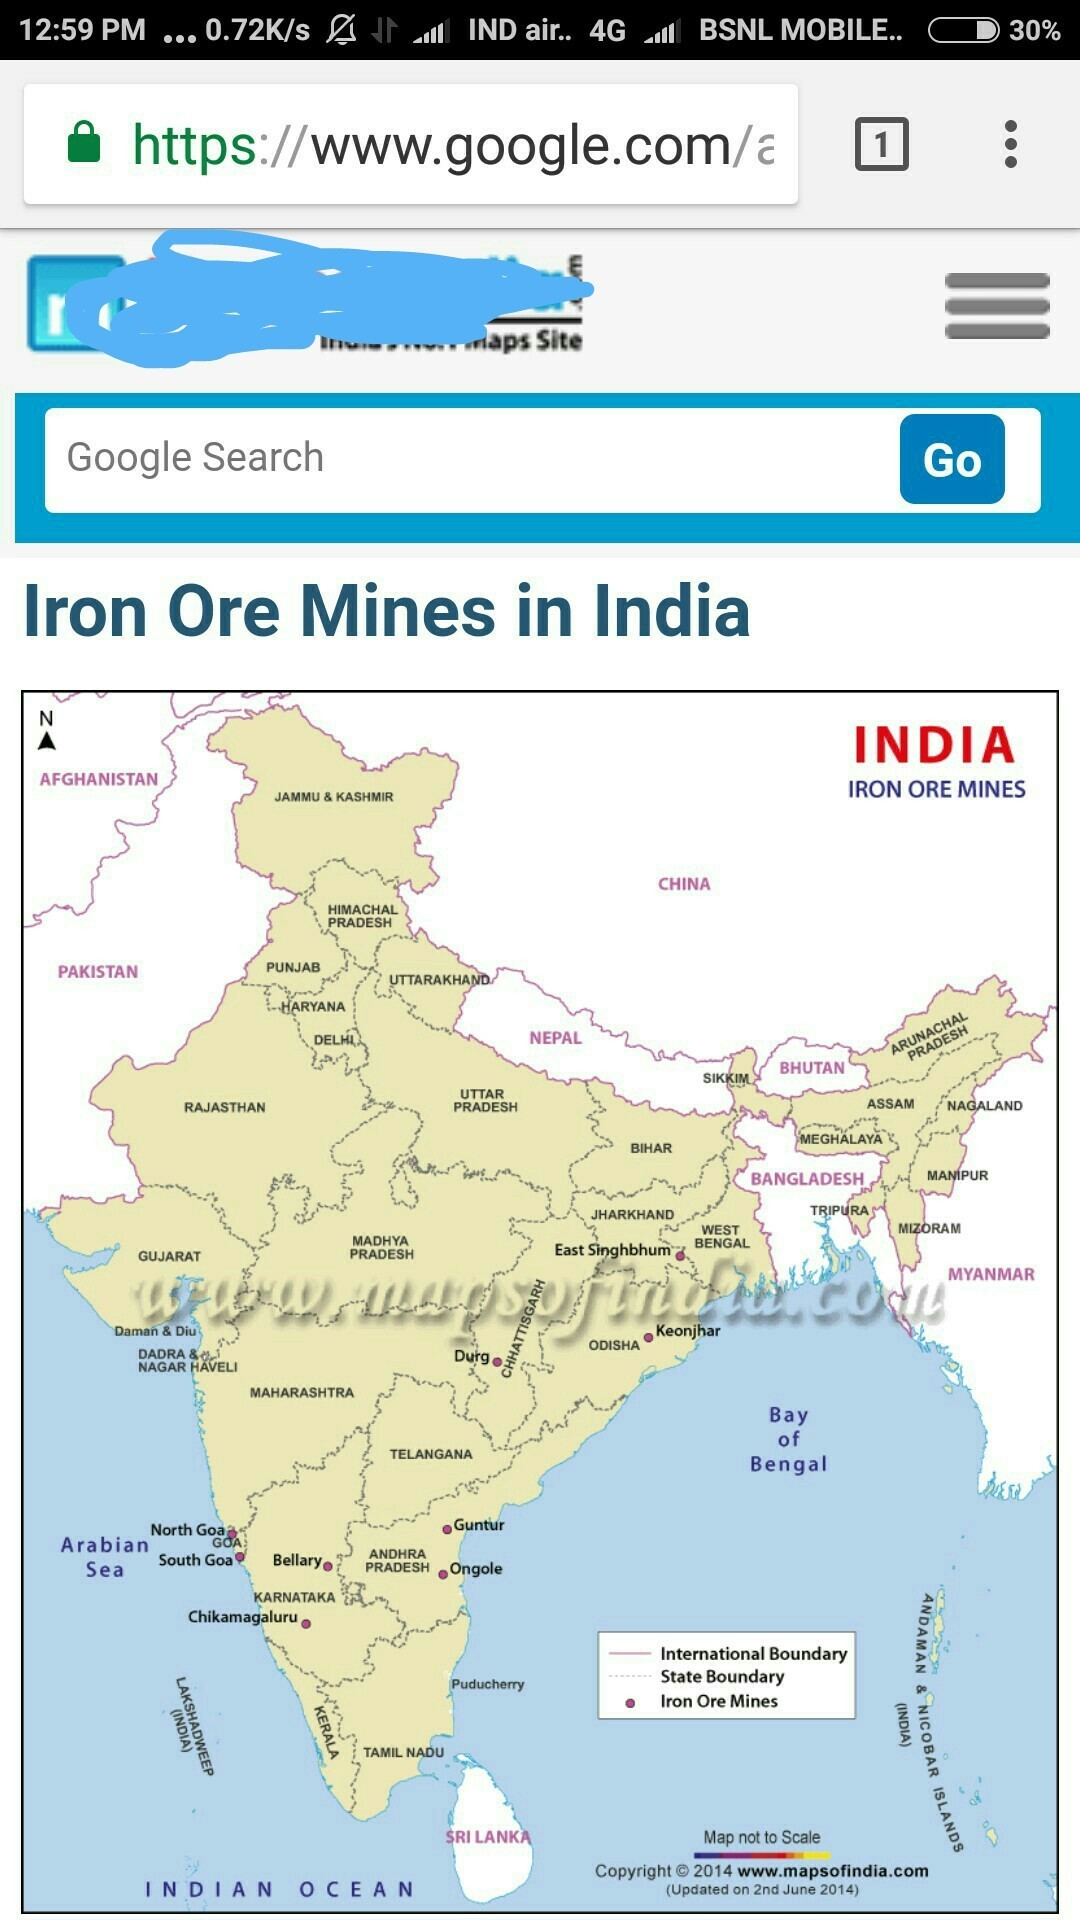 Iron ore mines in Indian map - Brainly in